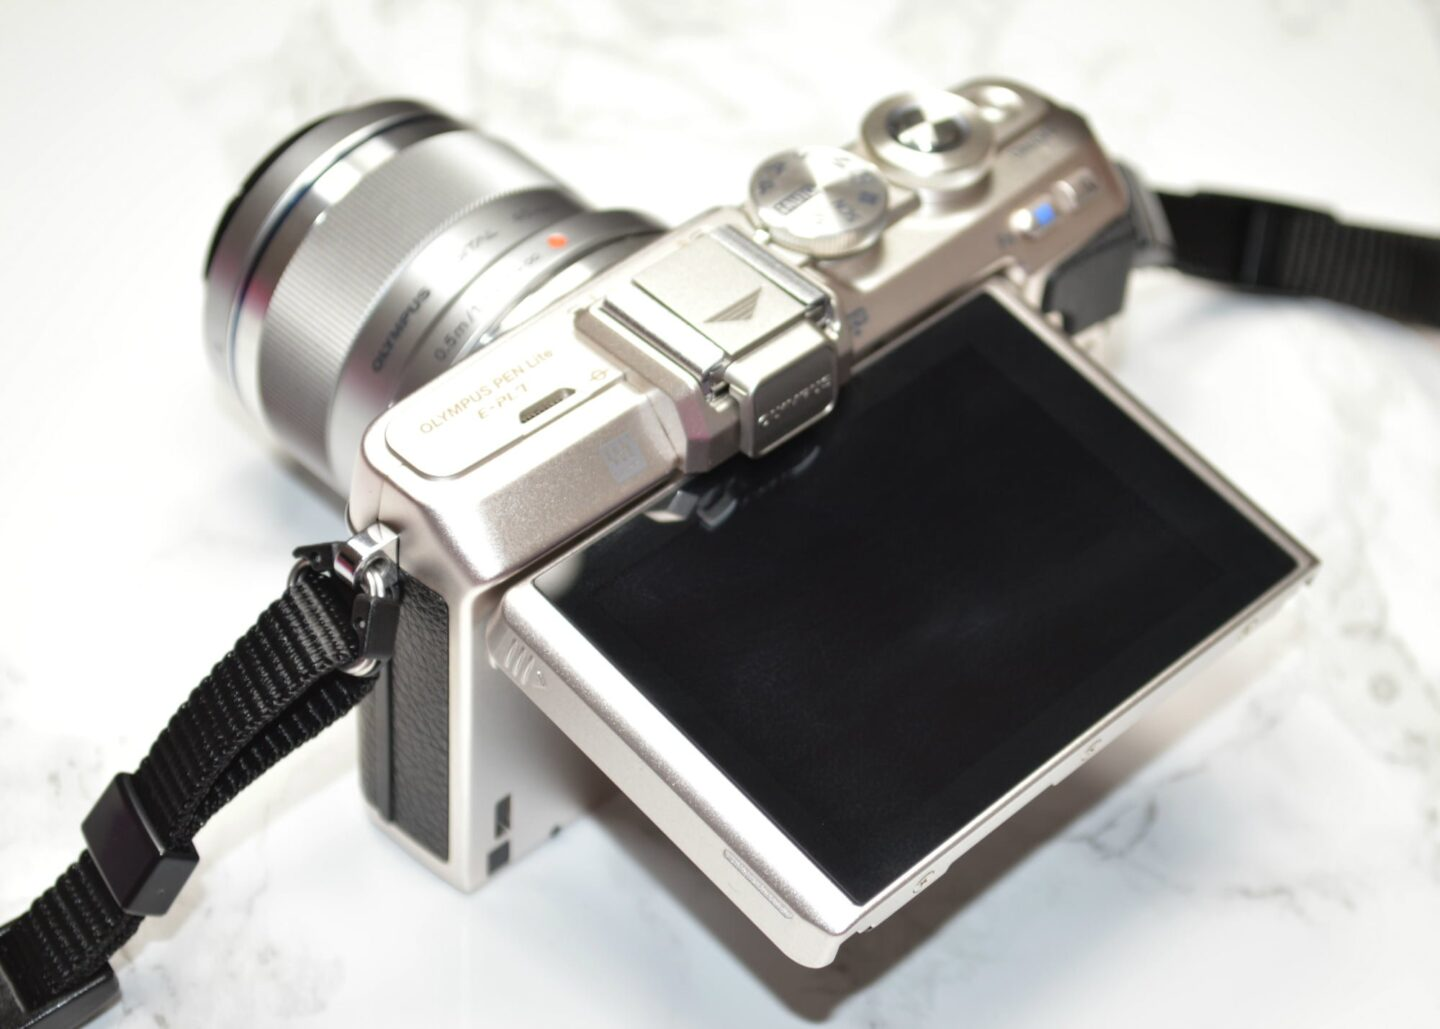 Olympus PEN E-PL7 Compact System Camera